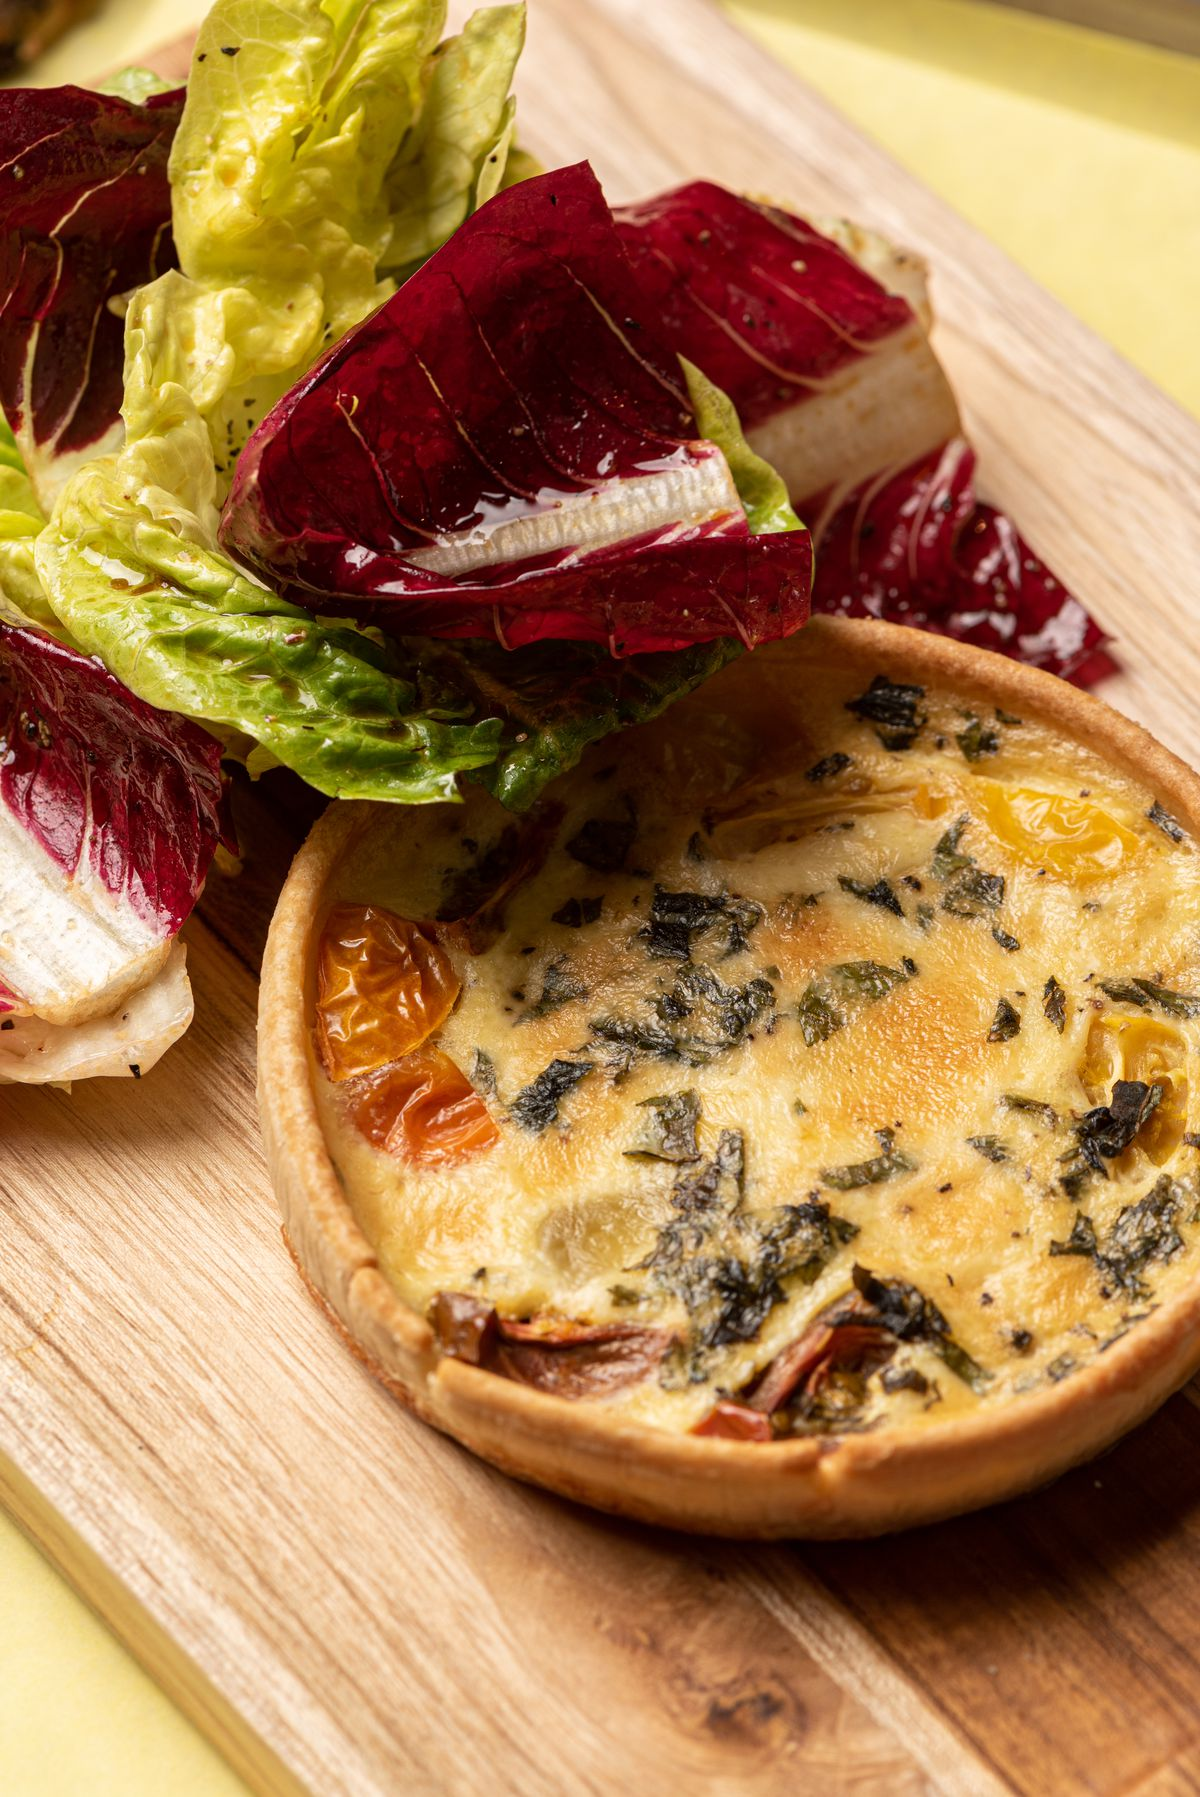 An overhead shot of a single-serving round quiche with side salad.